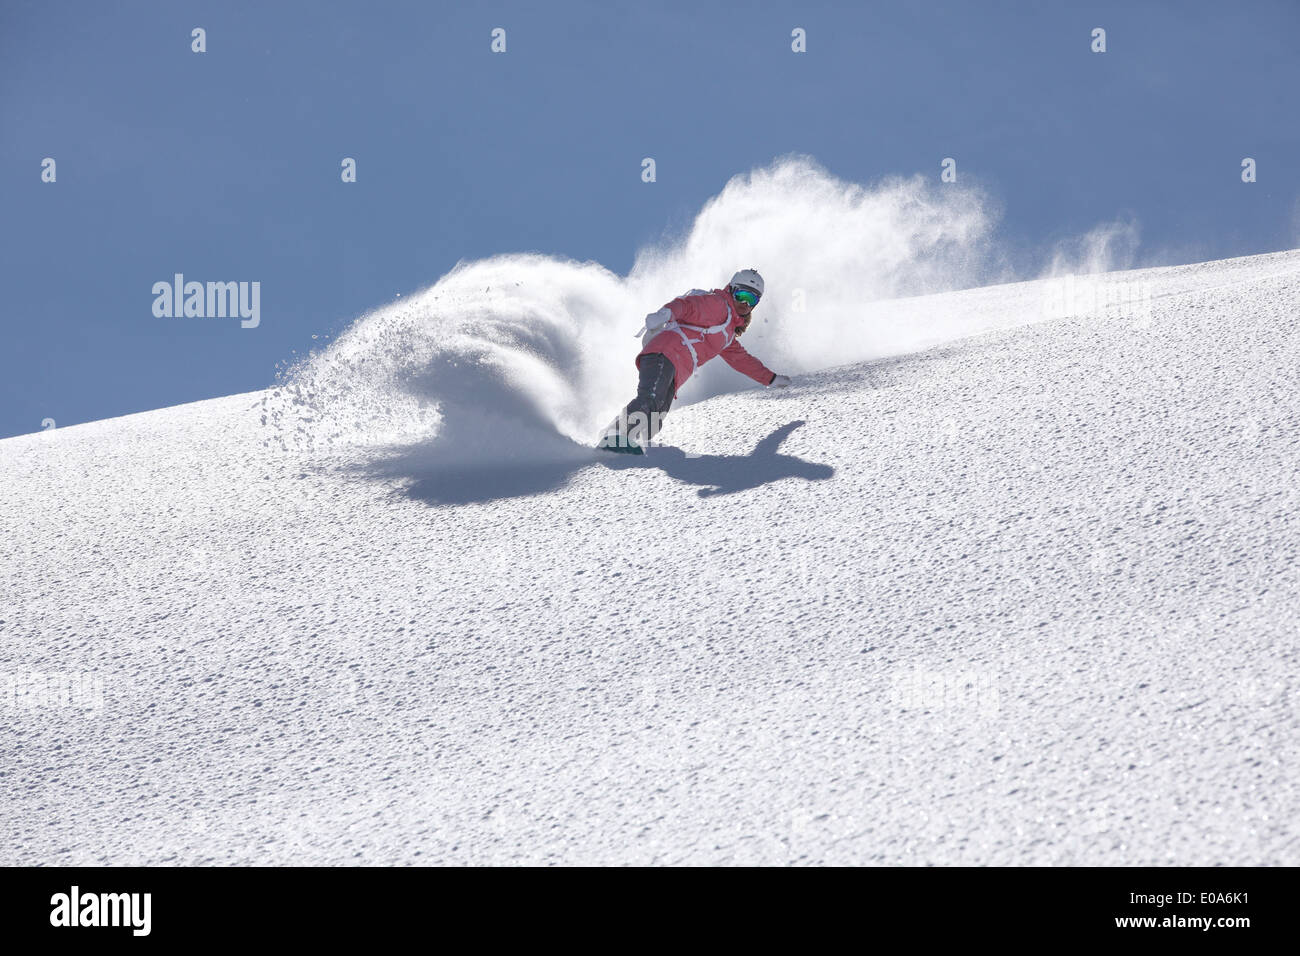 Young woman snowboarding on mountain, Hintertux, Tyrol, Austria - Stock Image